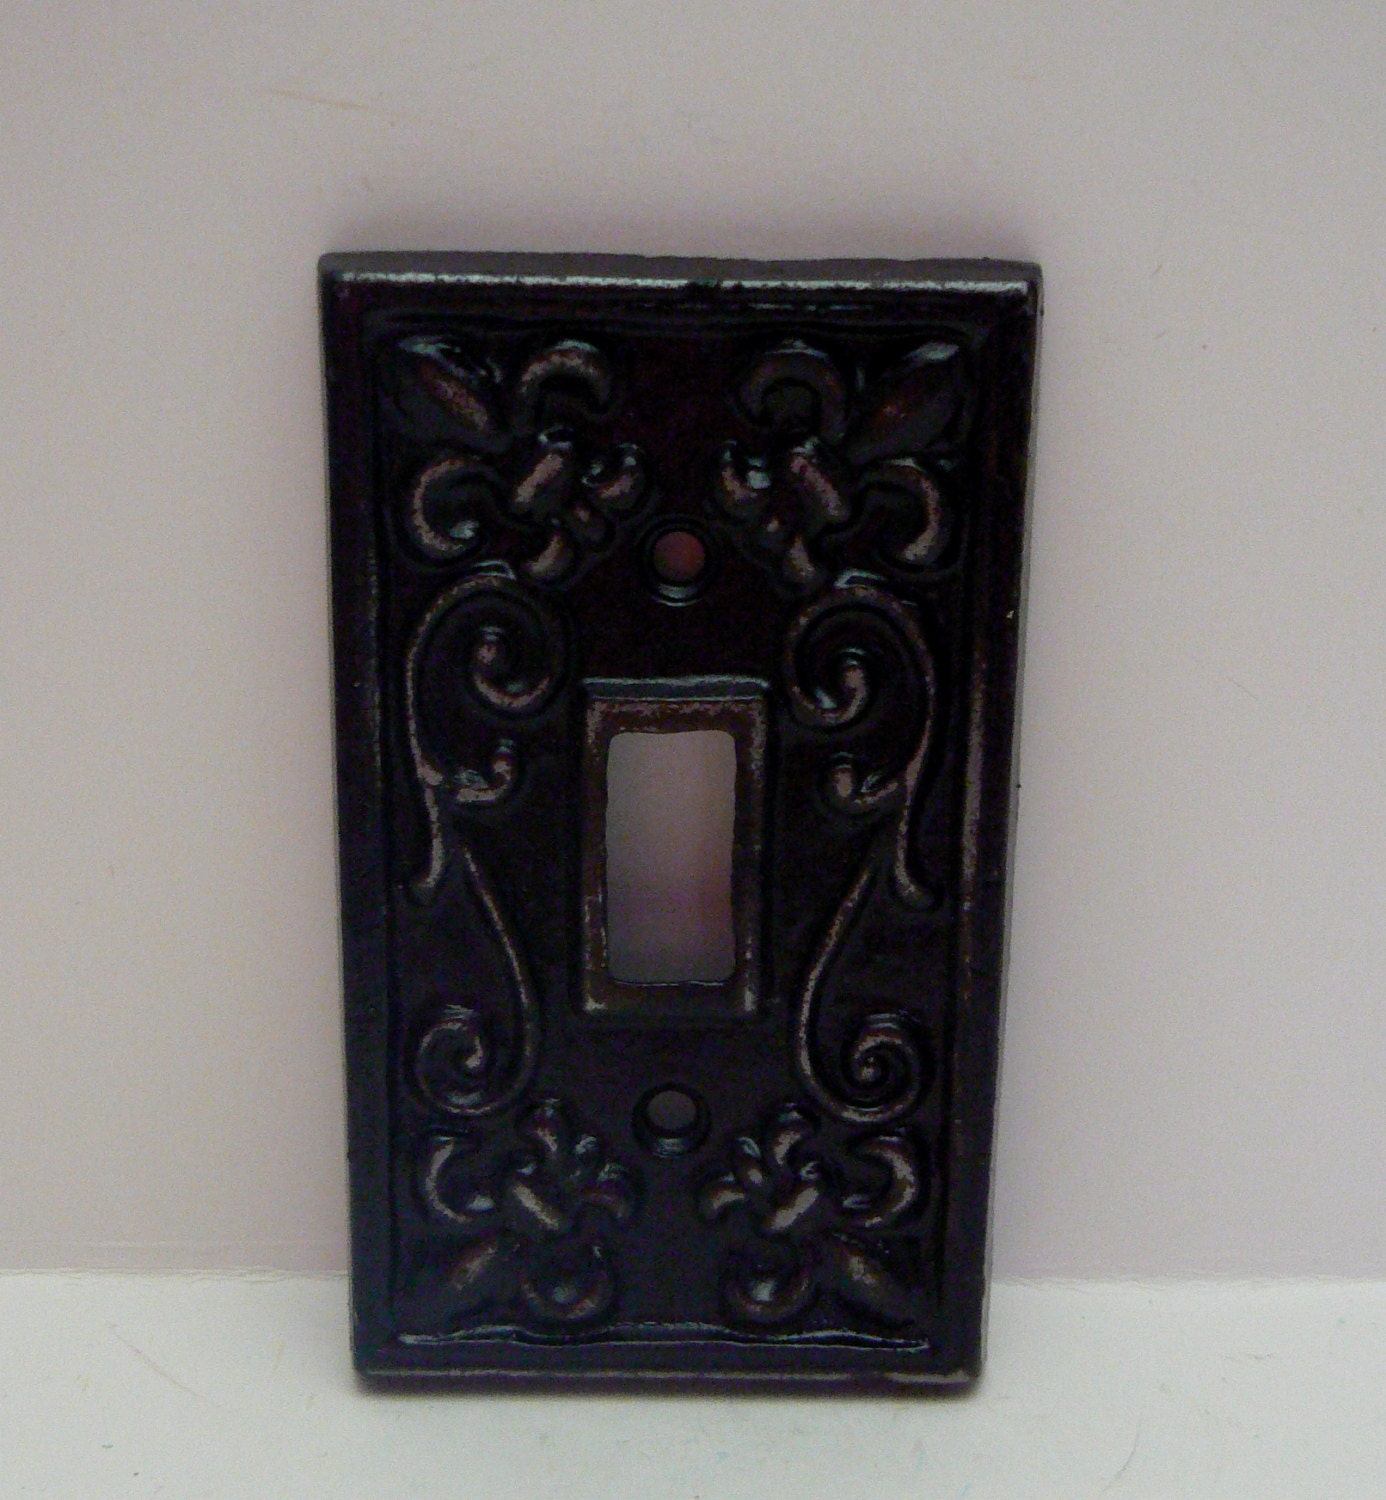 Fleur de lis cast iron fdl light switch plate cover single - Wrought iron switch plate covers ...